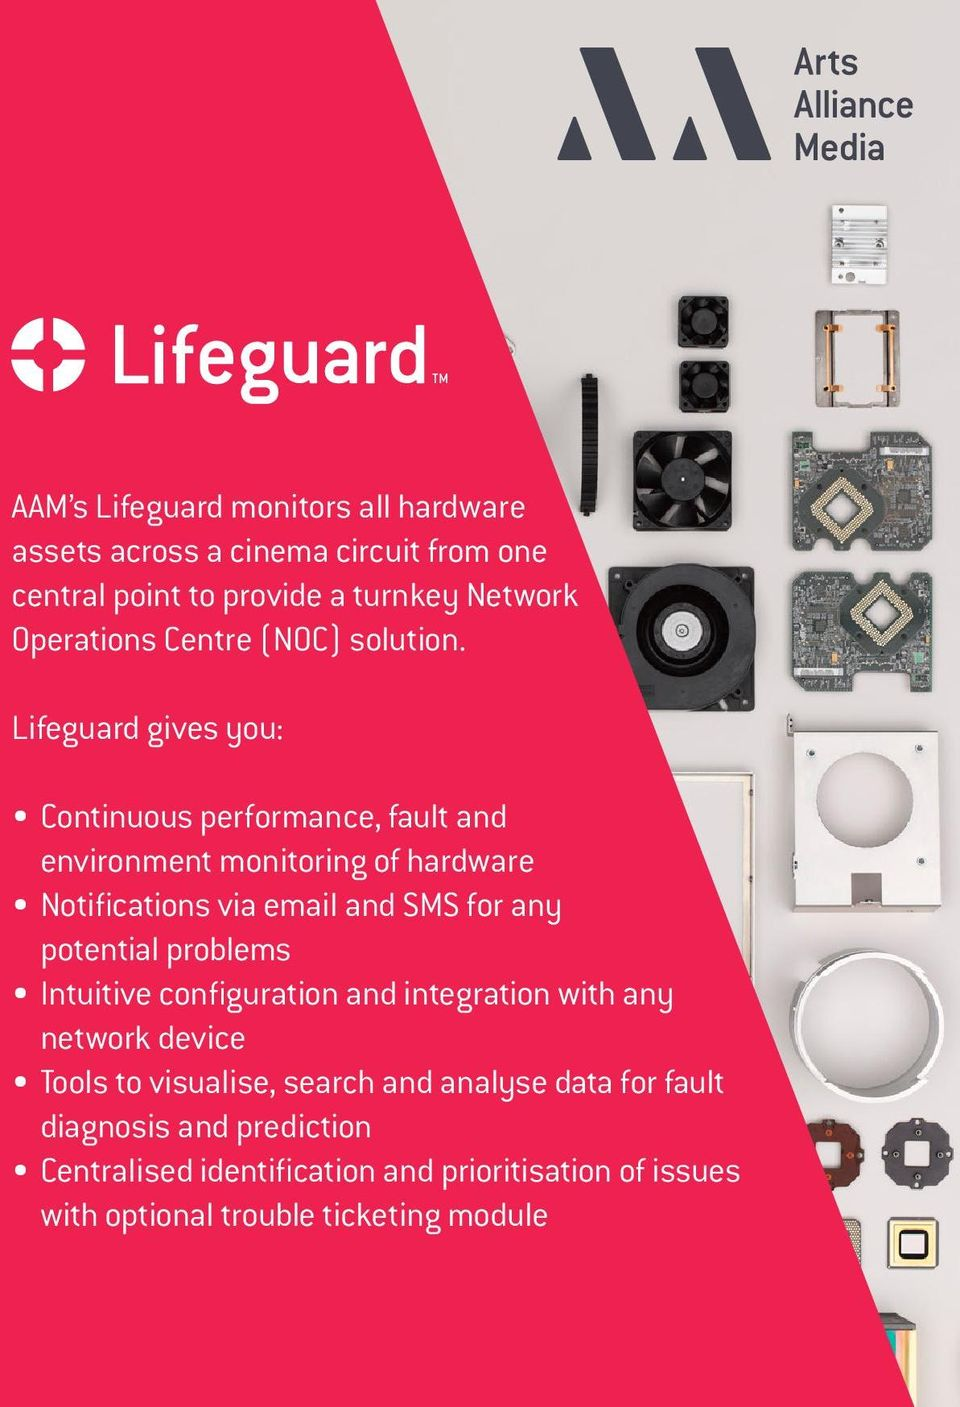 Lifeguard gives you: Continuous performance, fault and environment monitoring of hardware Notifications via email and SMS for any